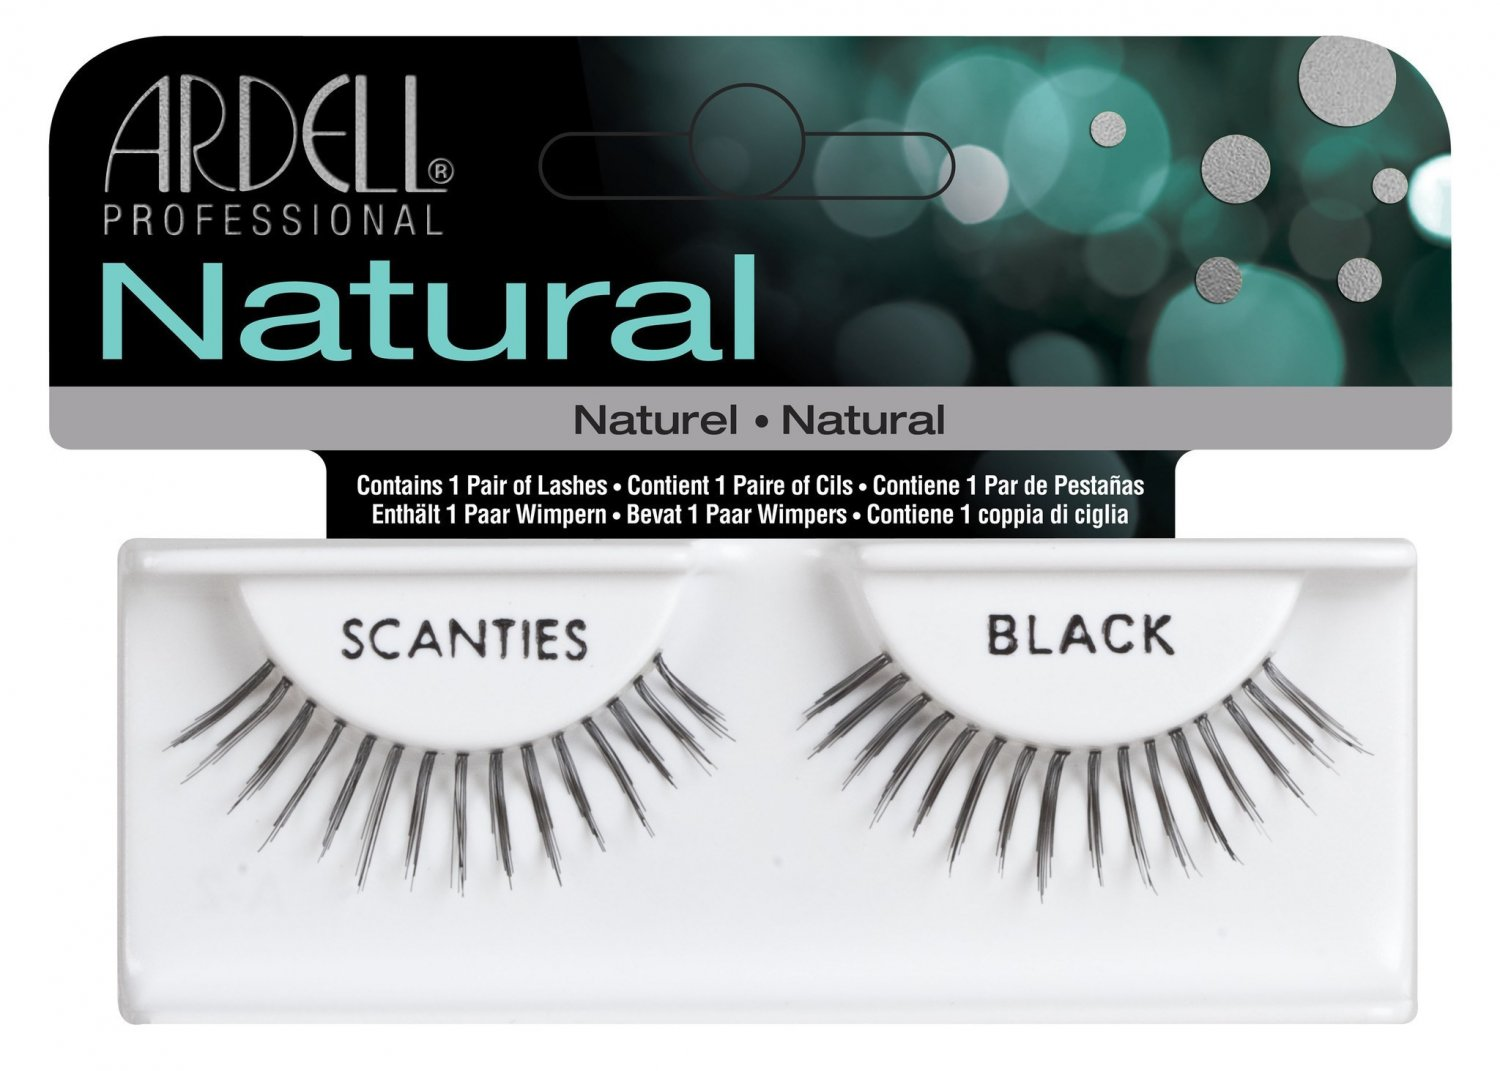 Ardell Professional Natural Lashes Style SCANTIES